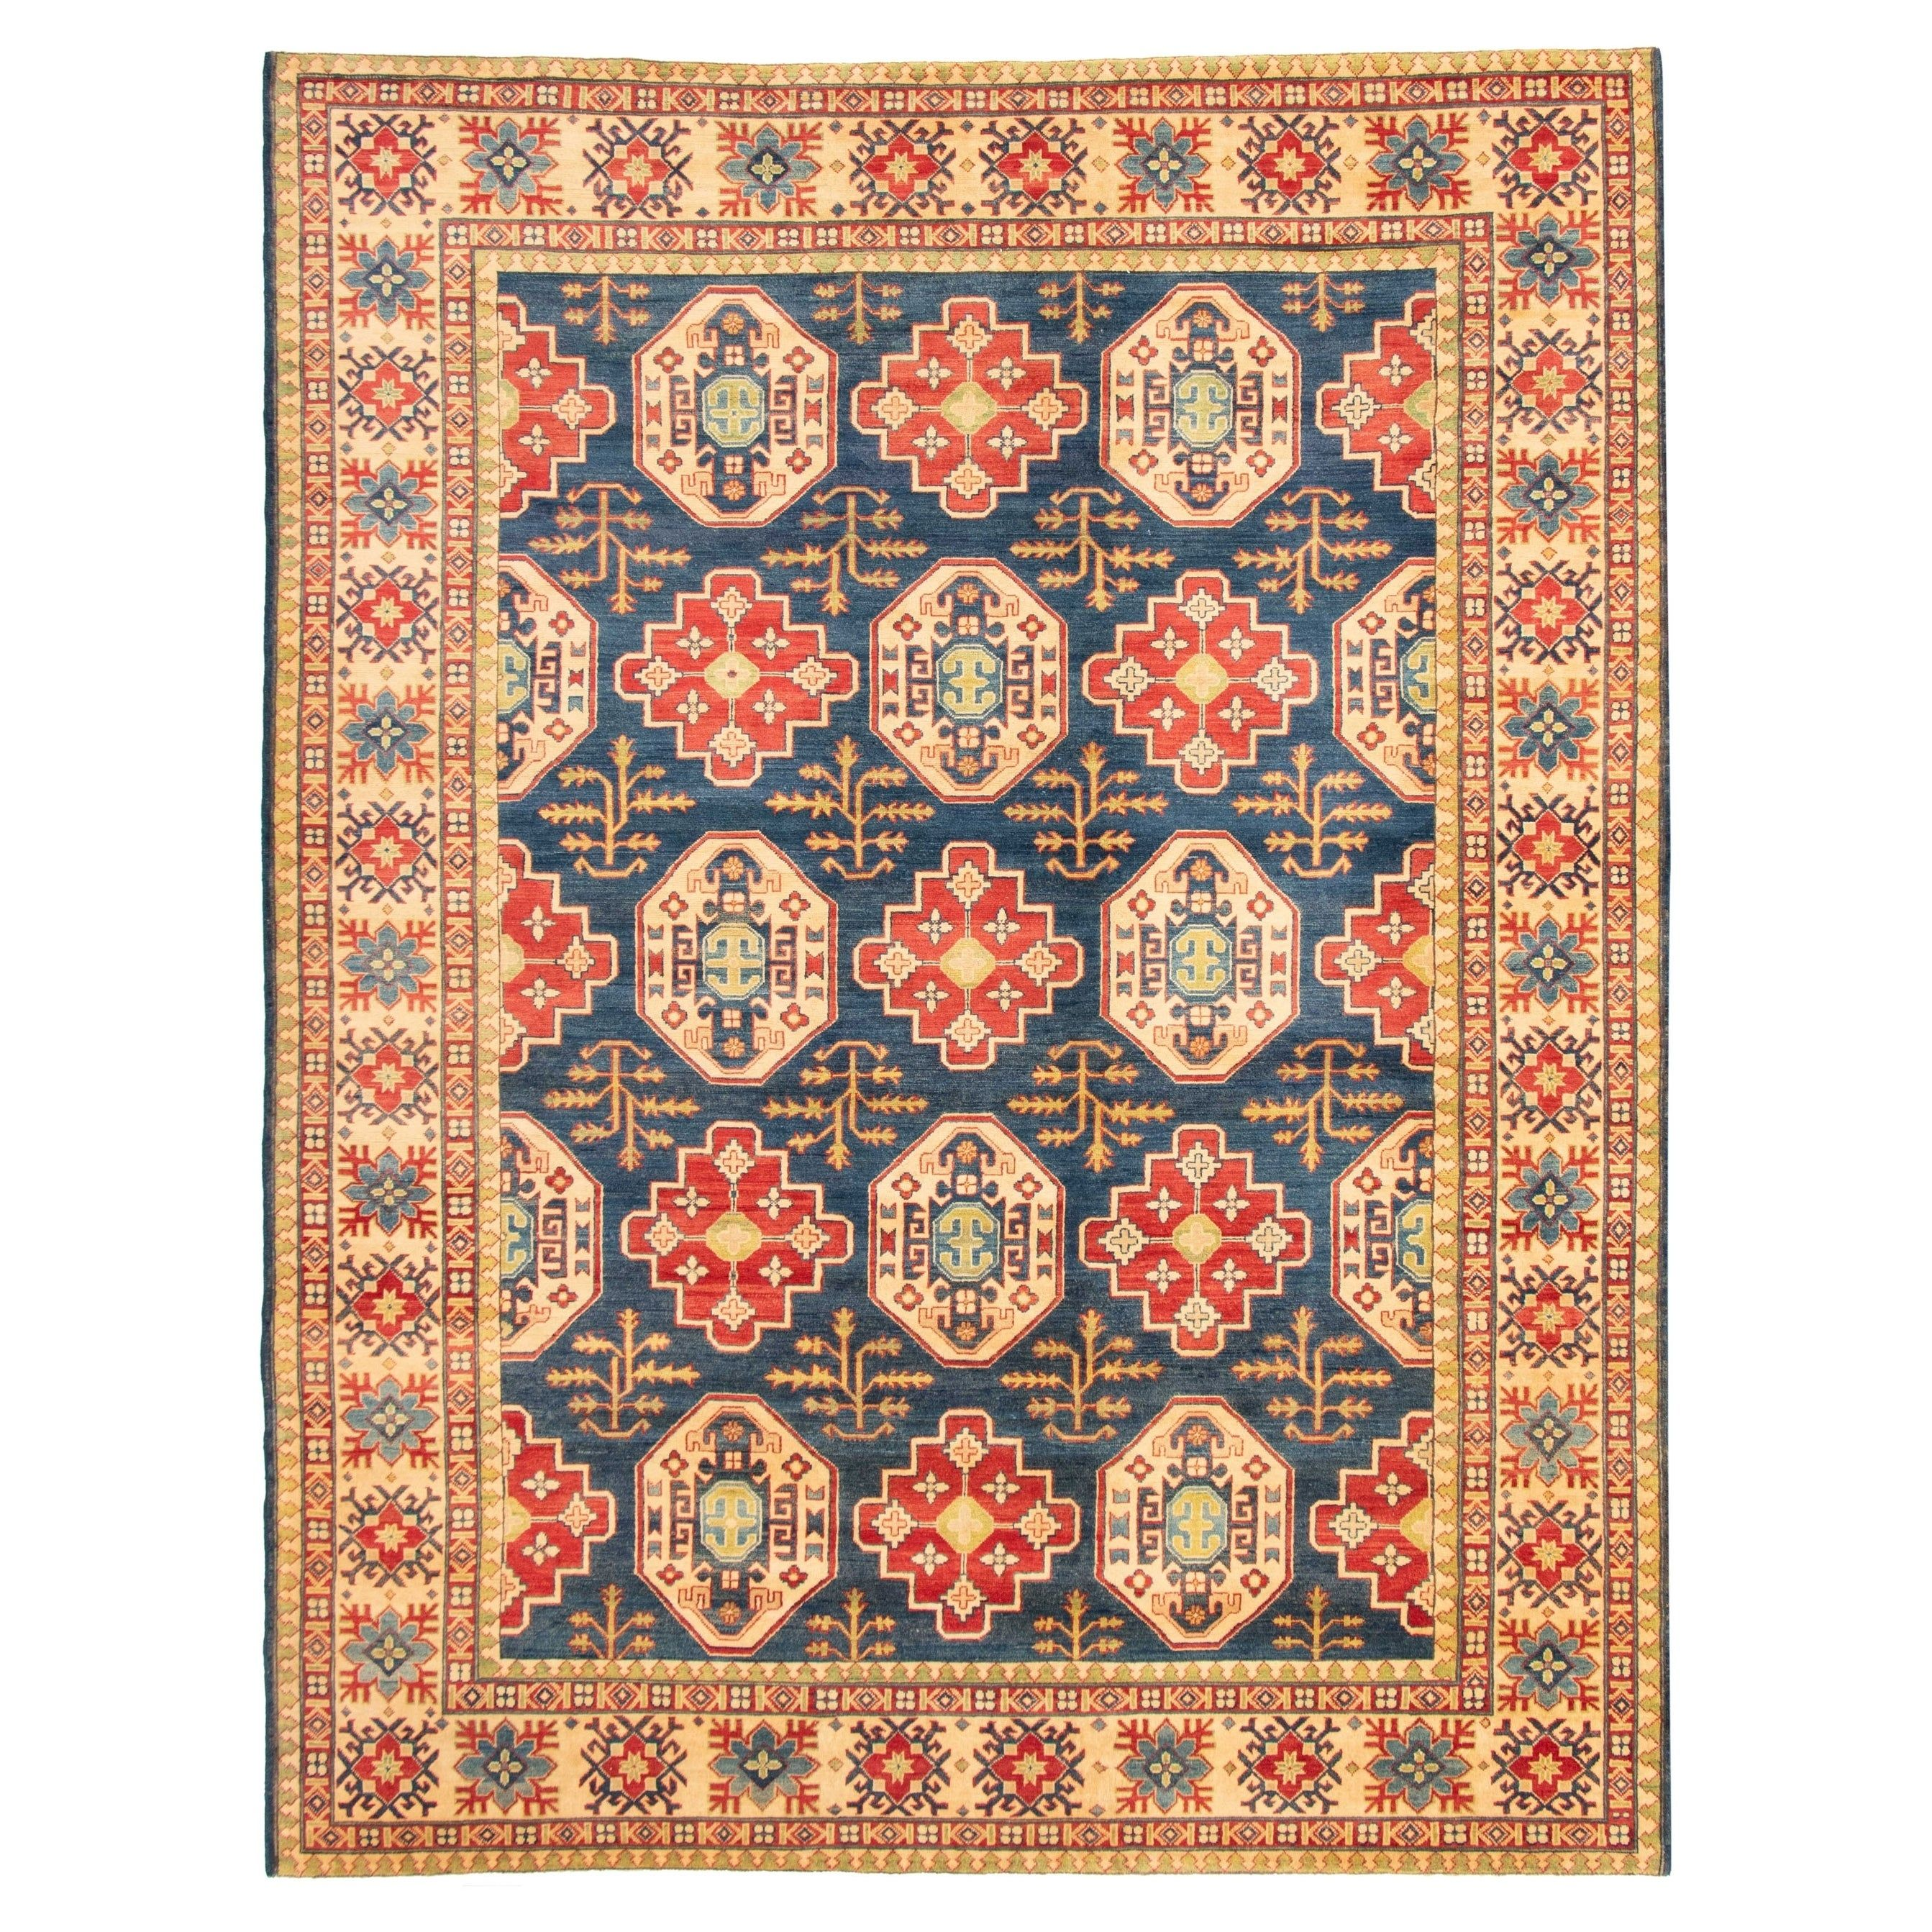 Online Shopping Bedding Furniture Electronics Jewelry Clothing More Wool Area Rugs Navy Blue Area Rug Rugs